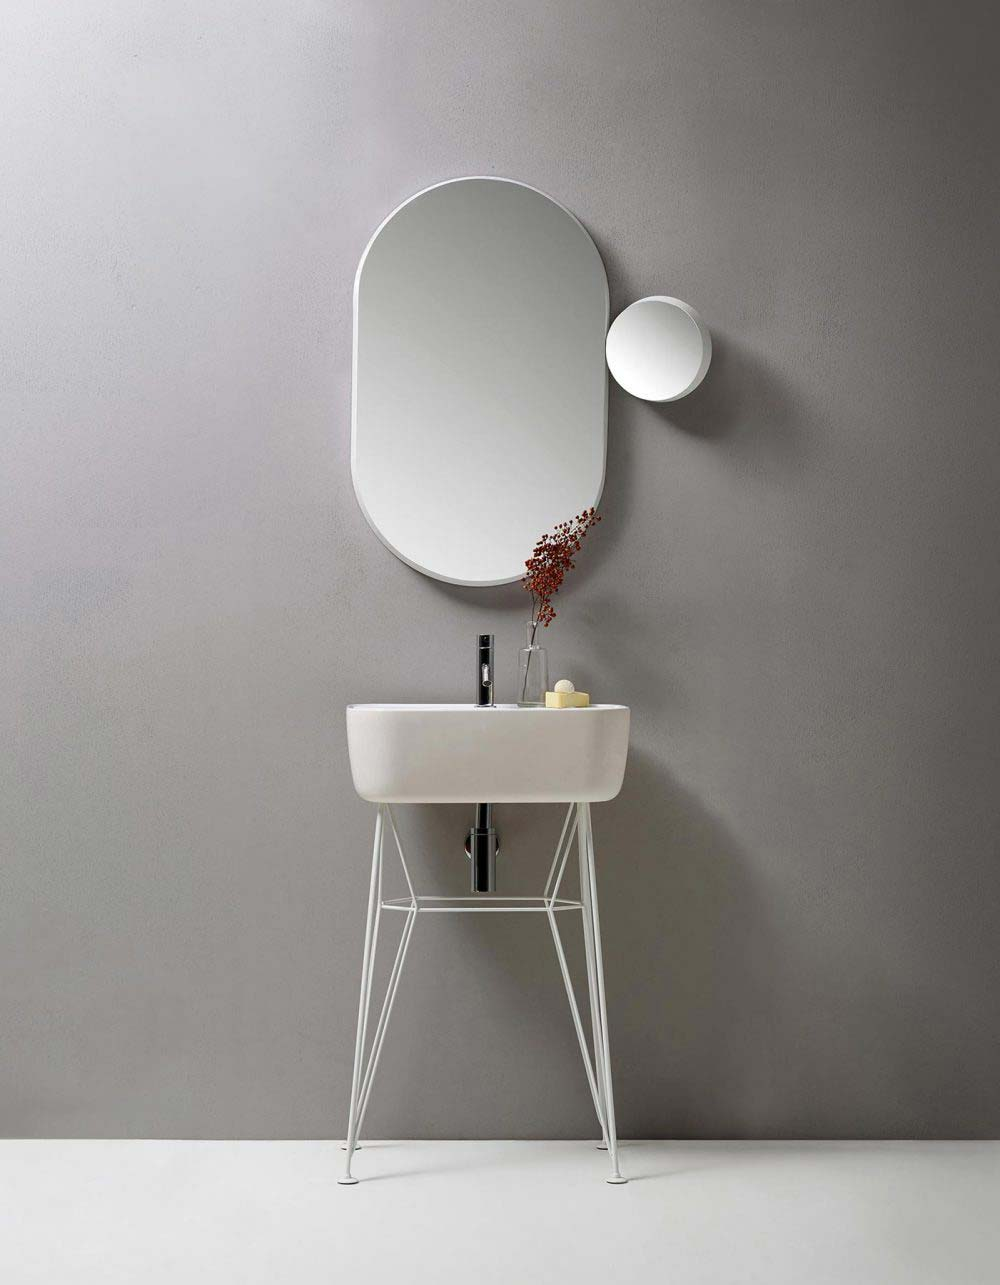 Bathroom Mirror Design - Gravity by Samuel Wilkinson